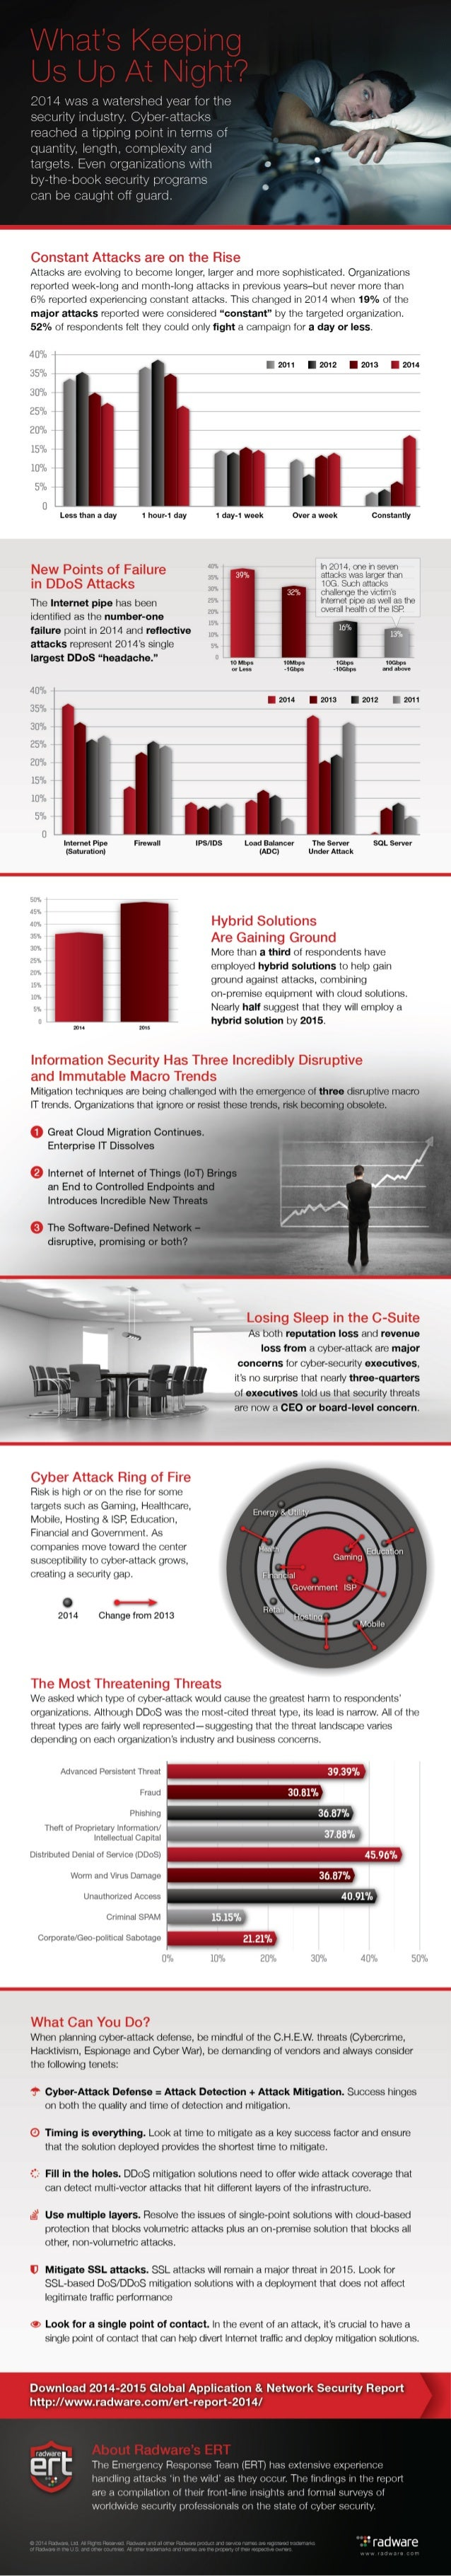 What's i<eeping Us Up At Night'?   2014 was a watershed year for the  security industry.  Cyber-attacks reached a tipping ...